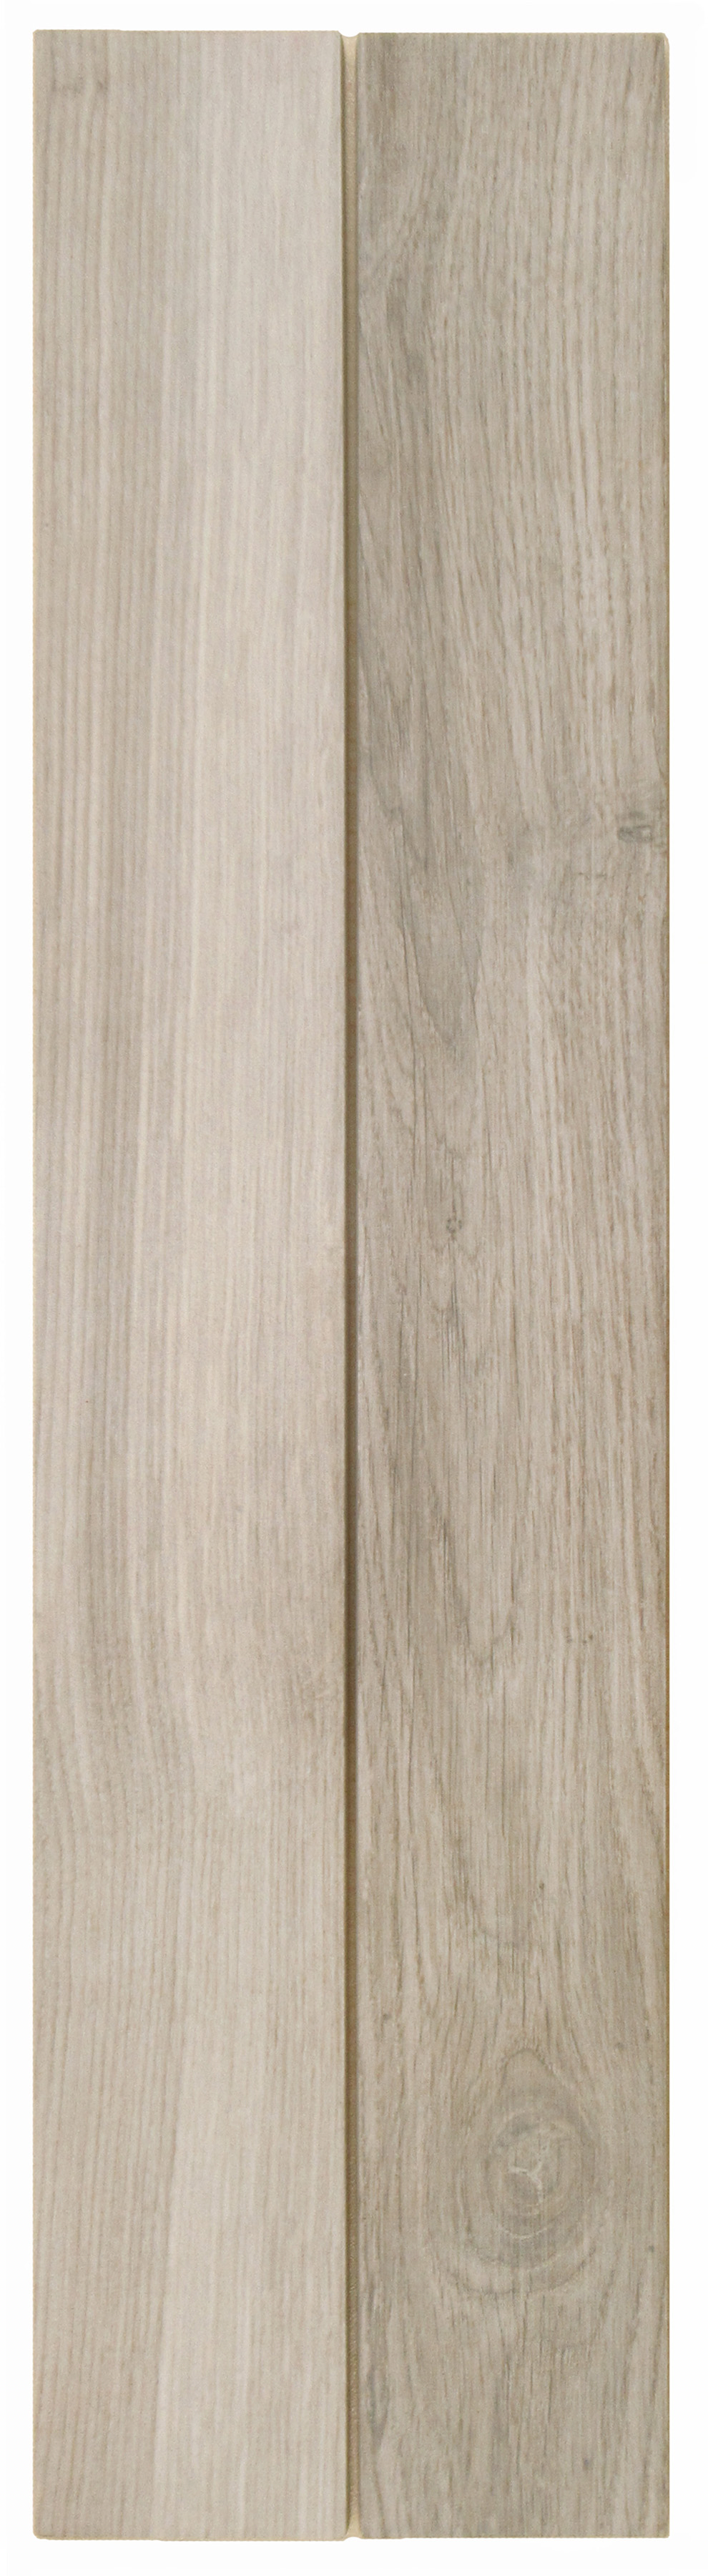 "Natural Almond -  3"" x 48"" Porcelain (2 pcs shown)"